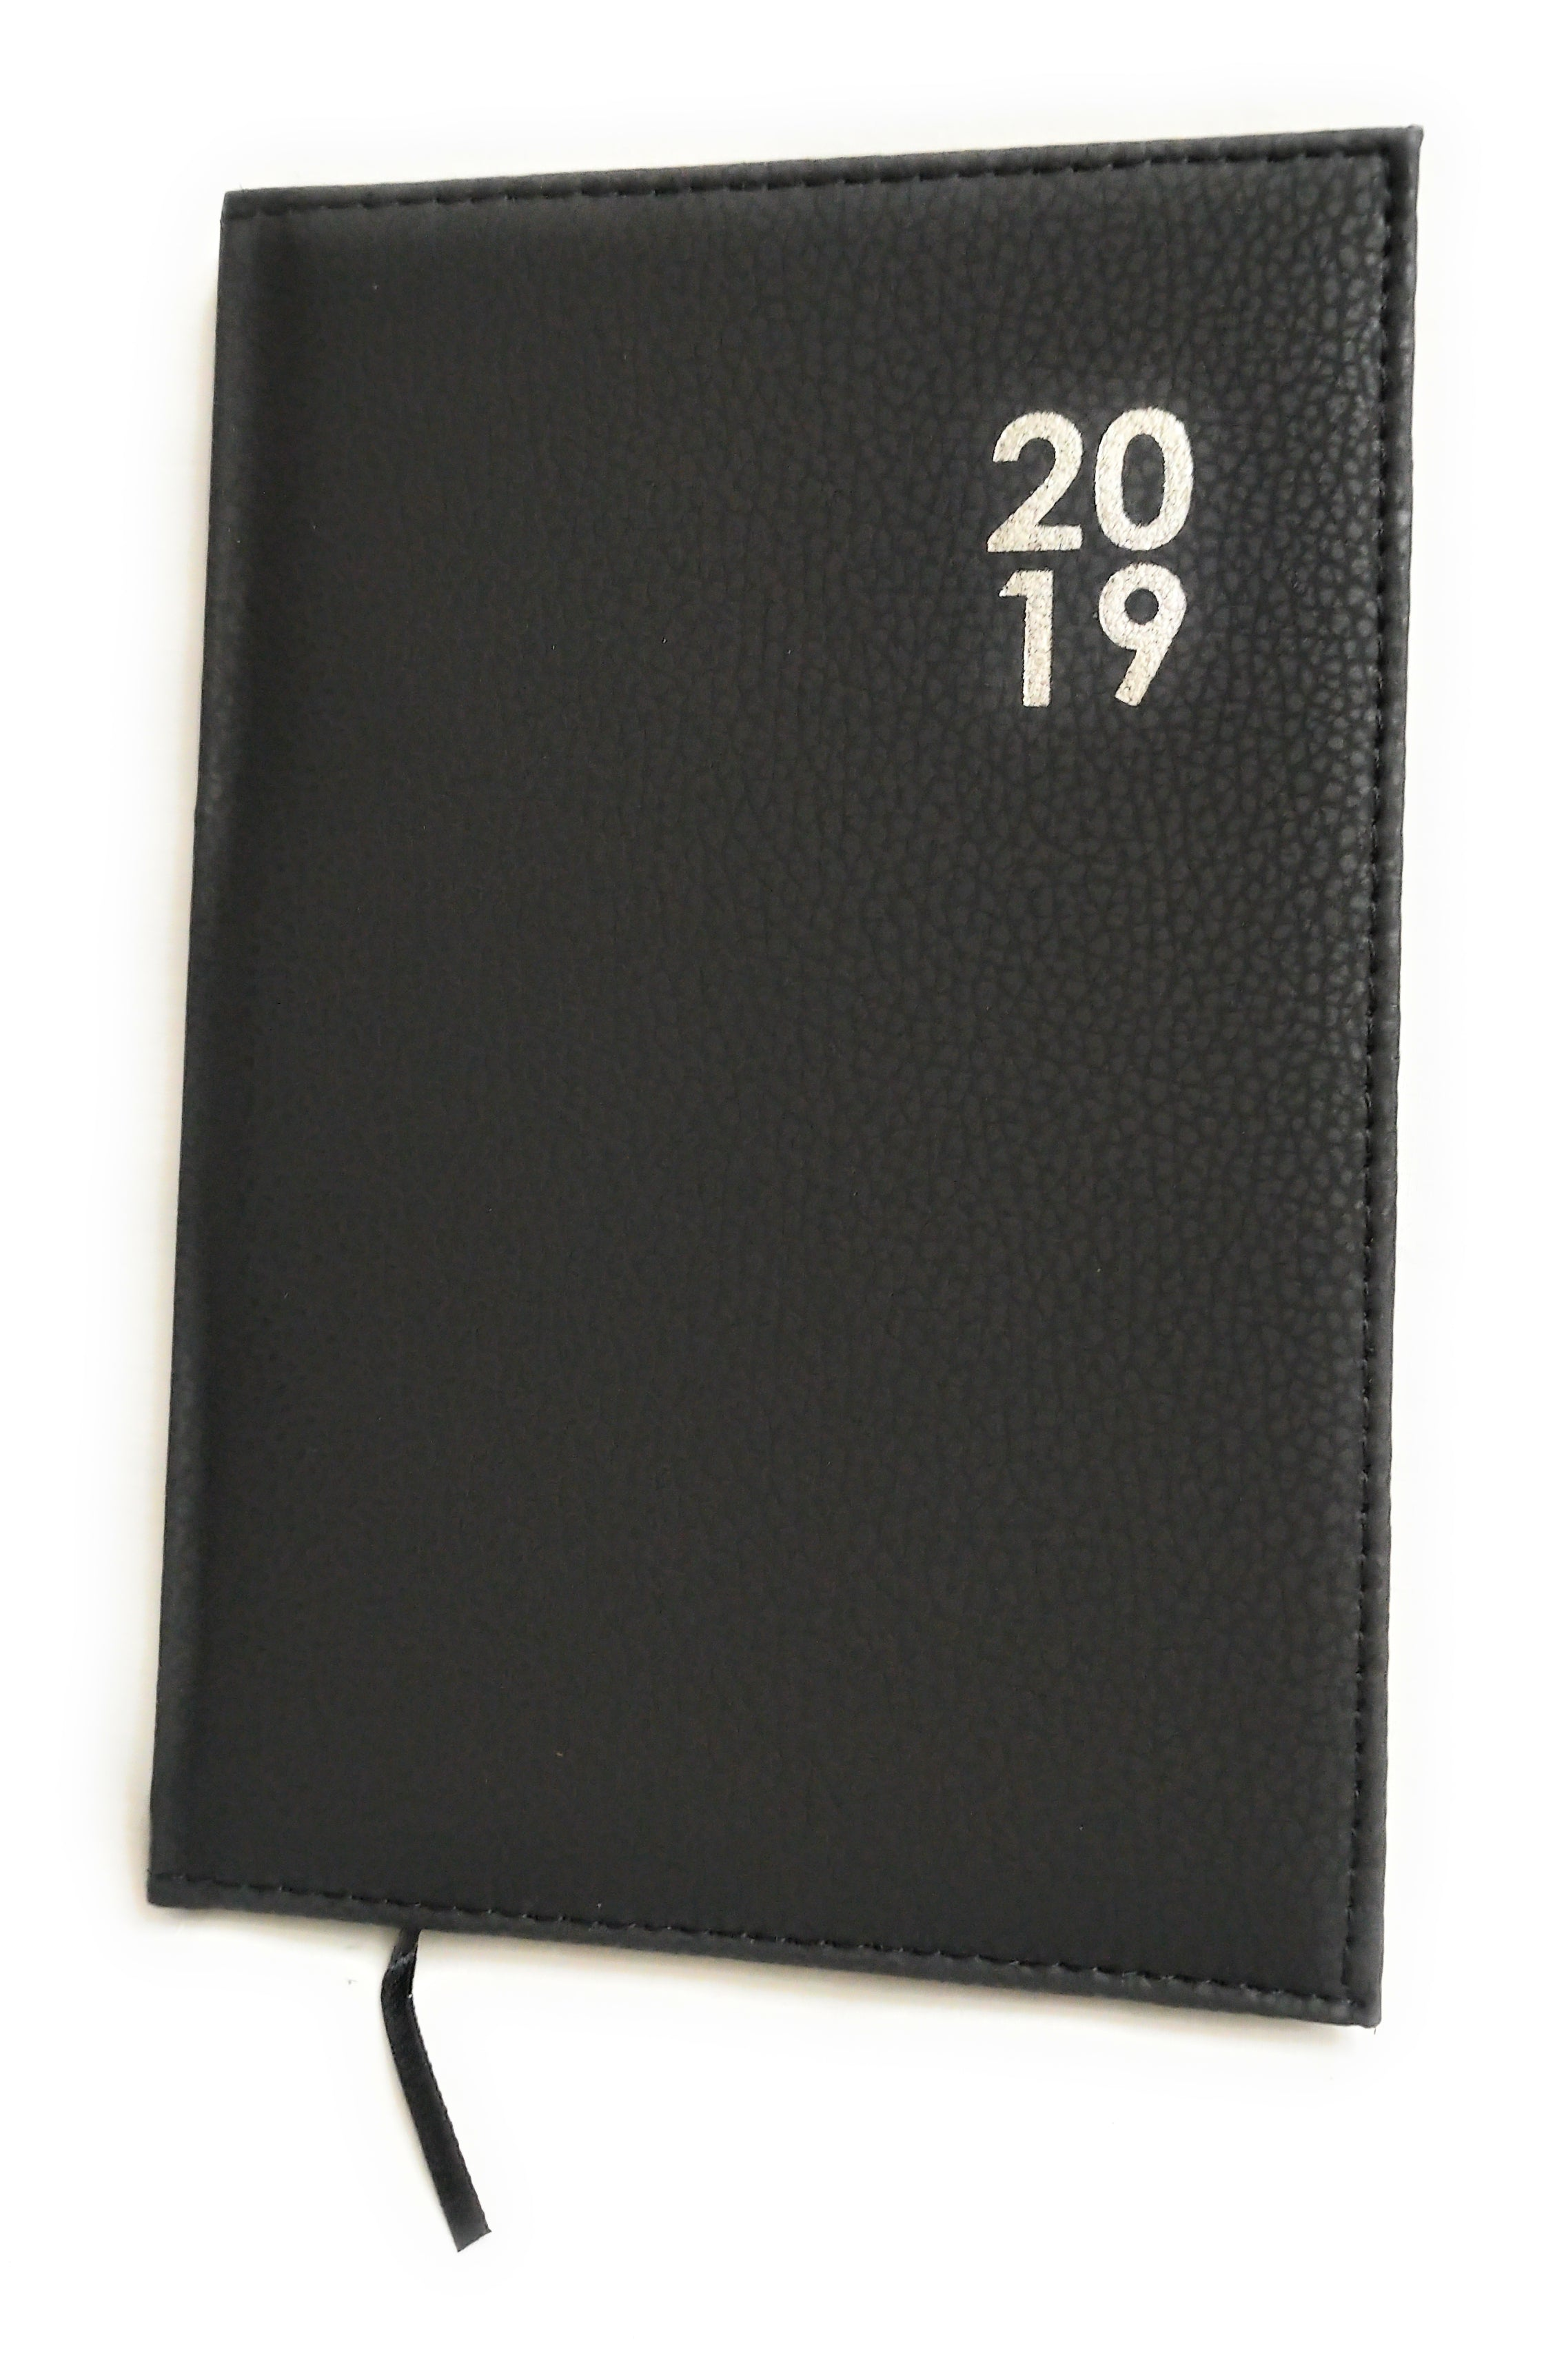 2019 Diary A5 Premium Padded Organiser Week To View Black Xmas Gift